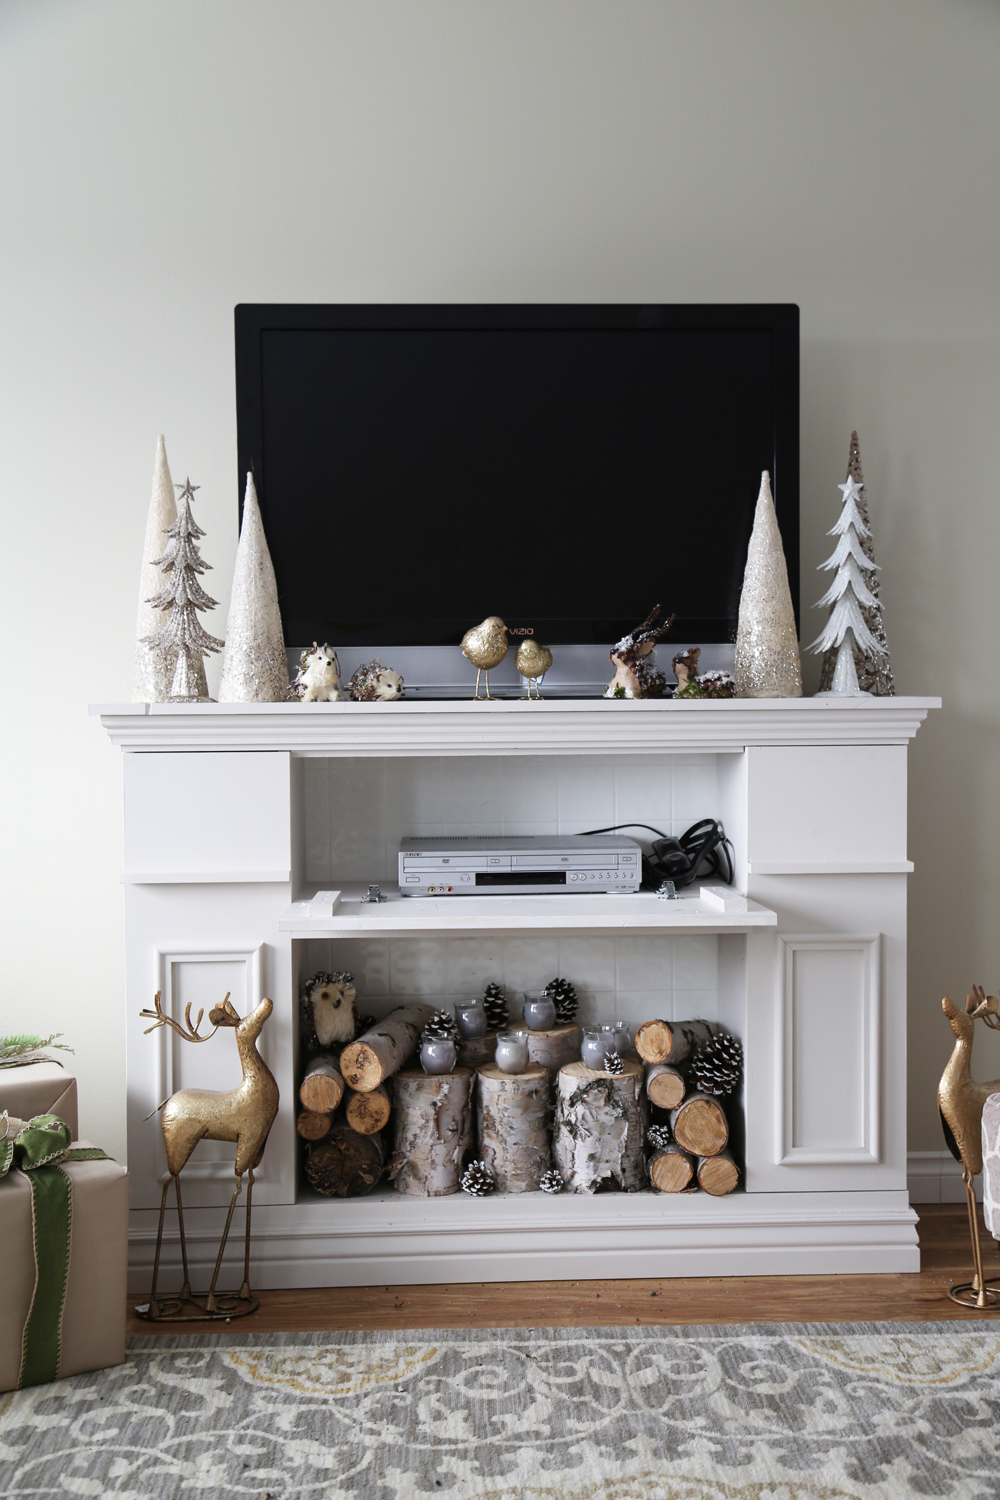 How To Make A Faux Fireplace Mantel Fireplace Design Ideas